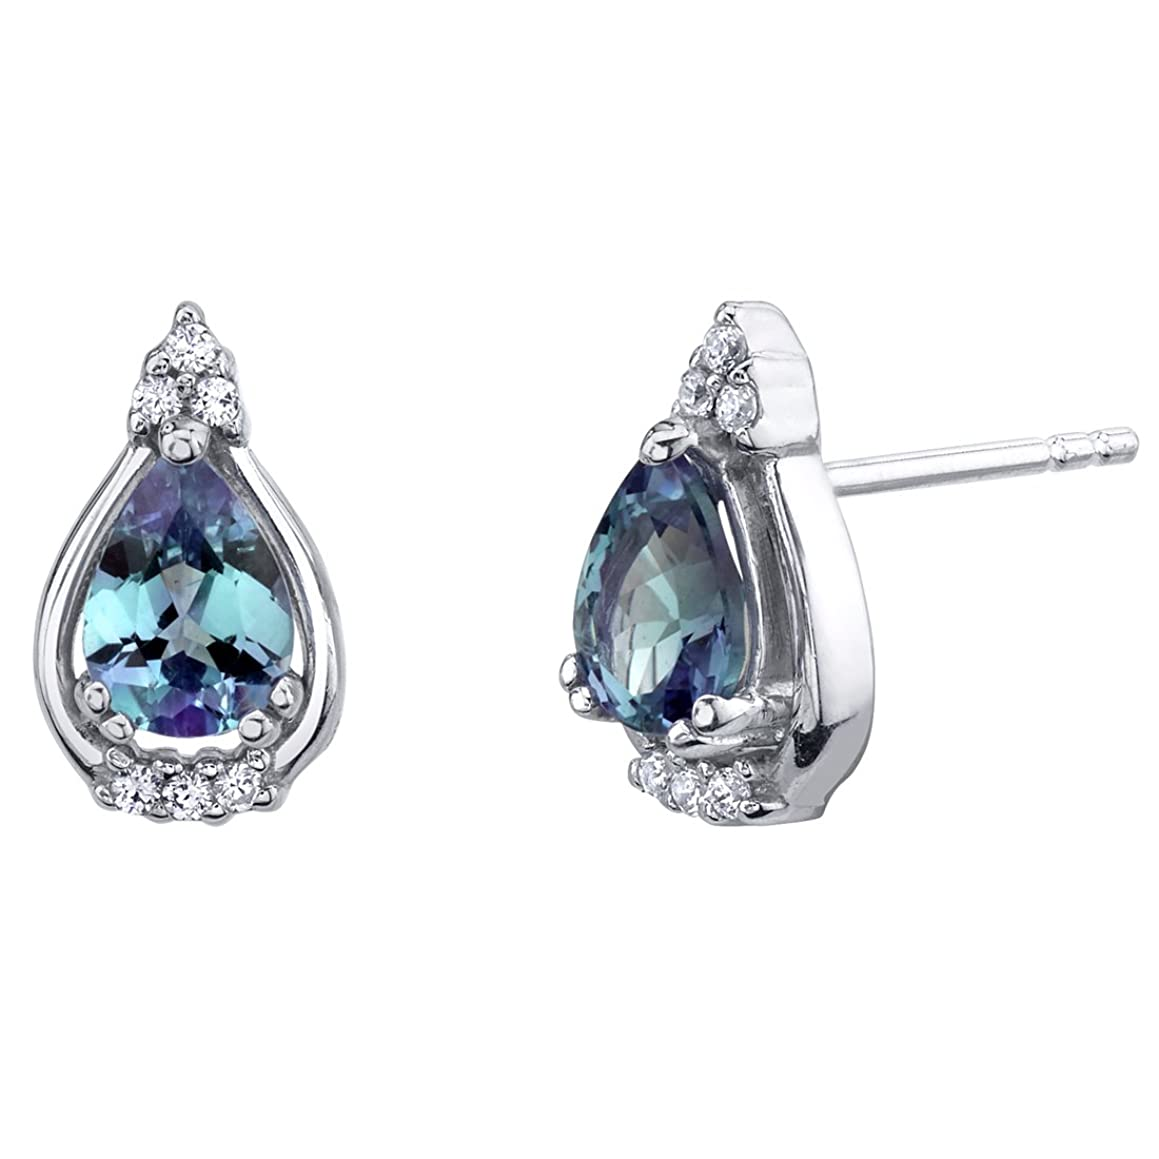 Sterling Silver Empress Stud Earrings in Various Gemstones